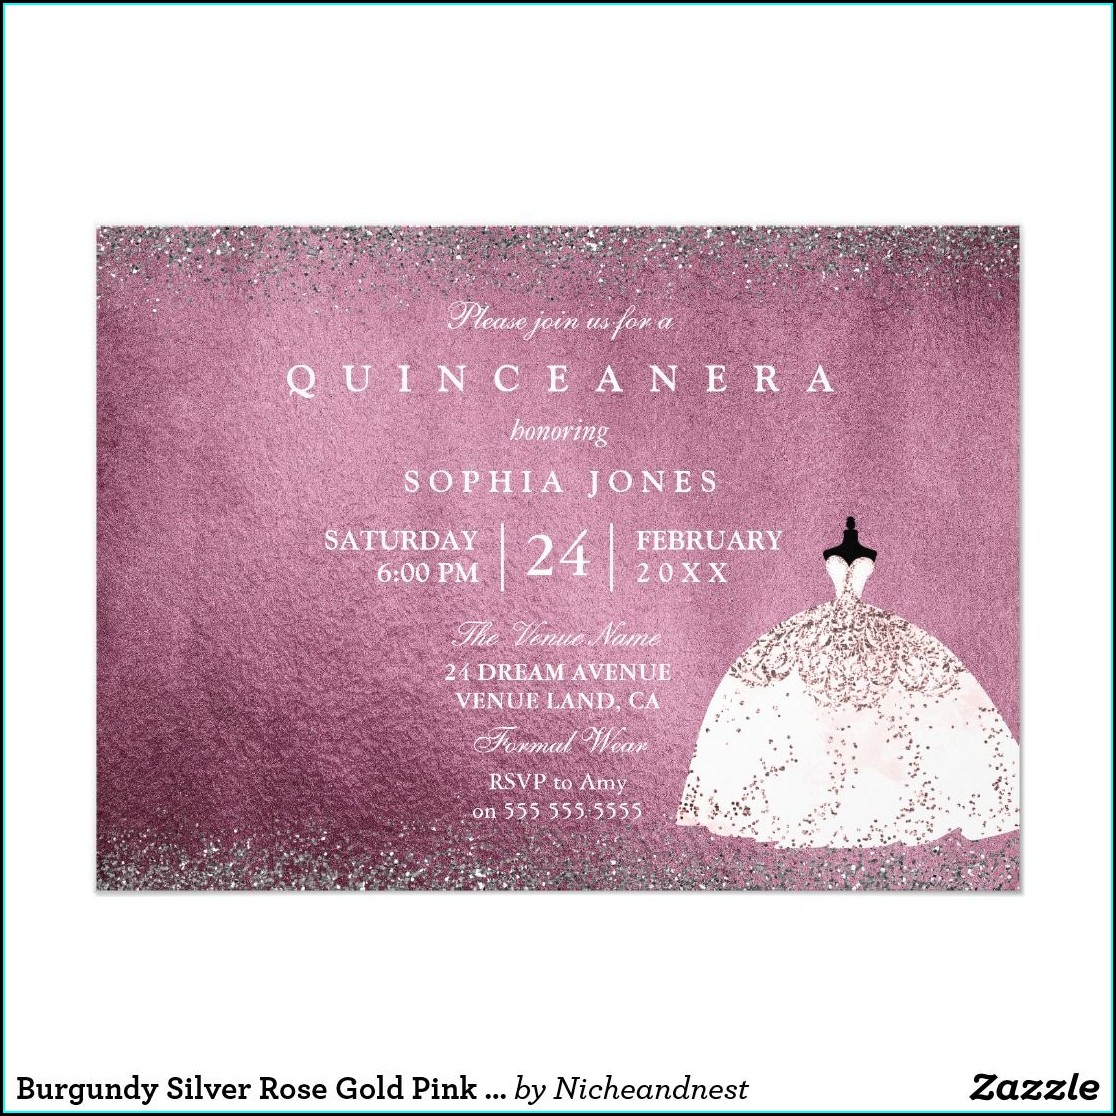 Quinceanera Invitations Burgundy And Gold